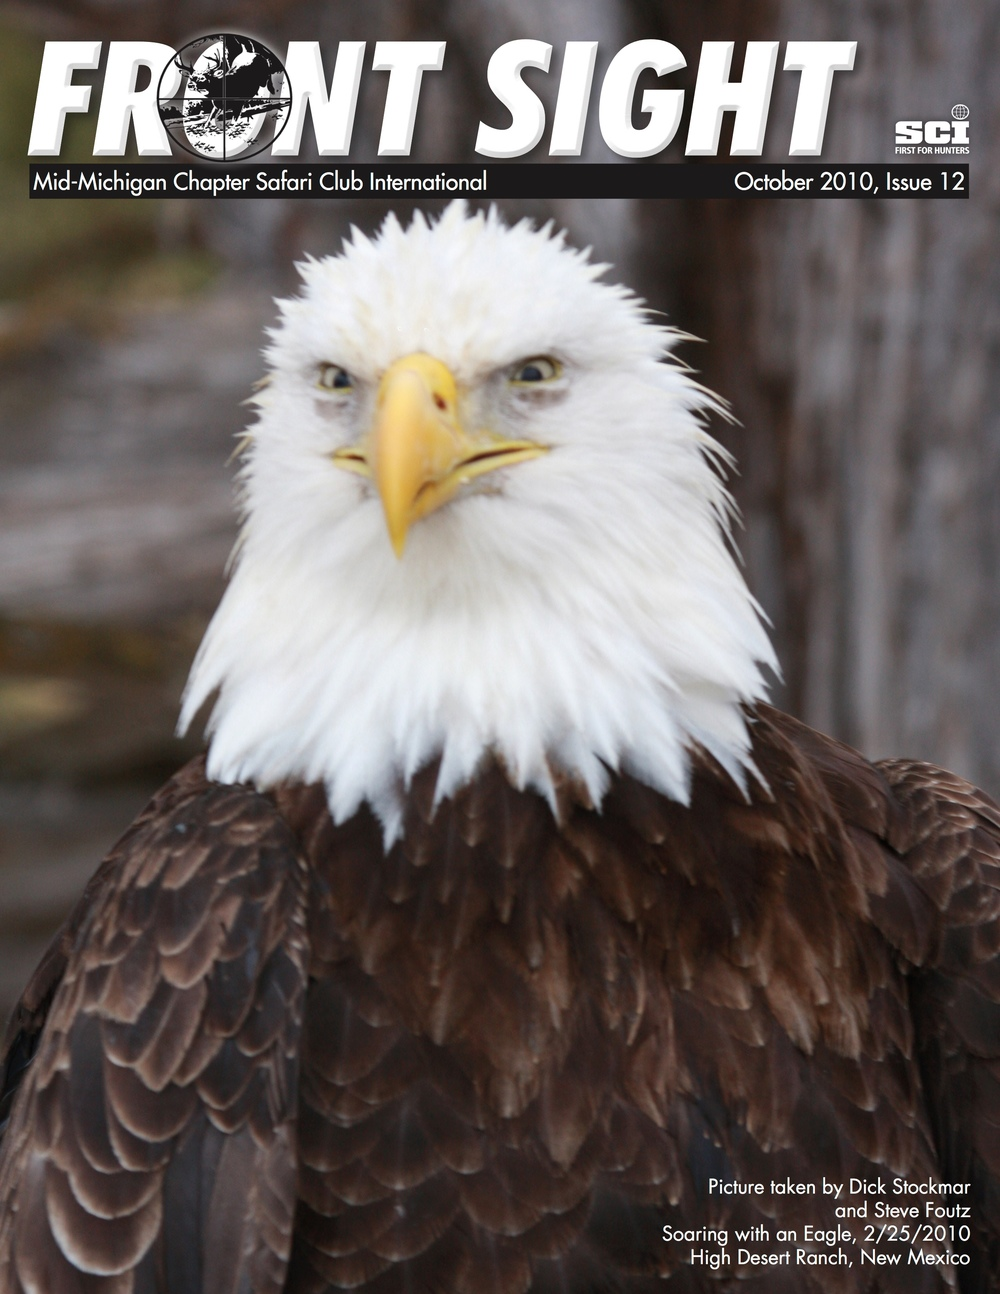 Issue 12, October 2010